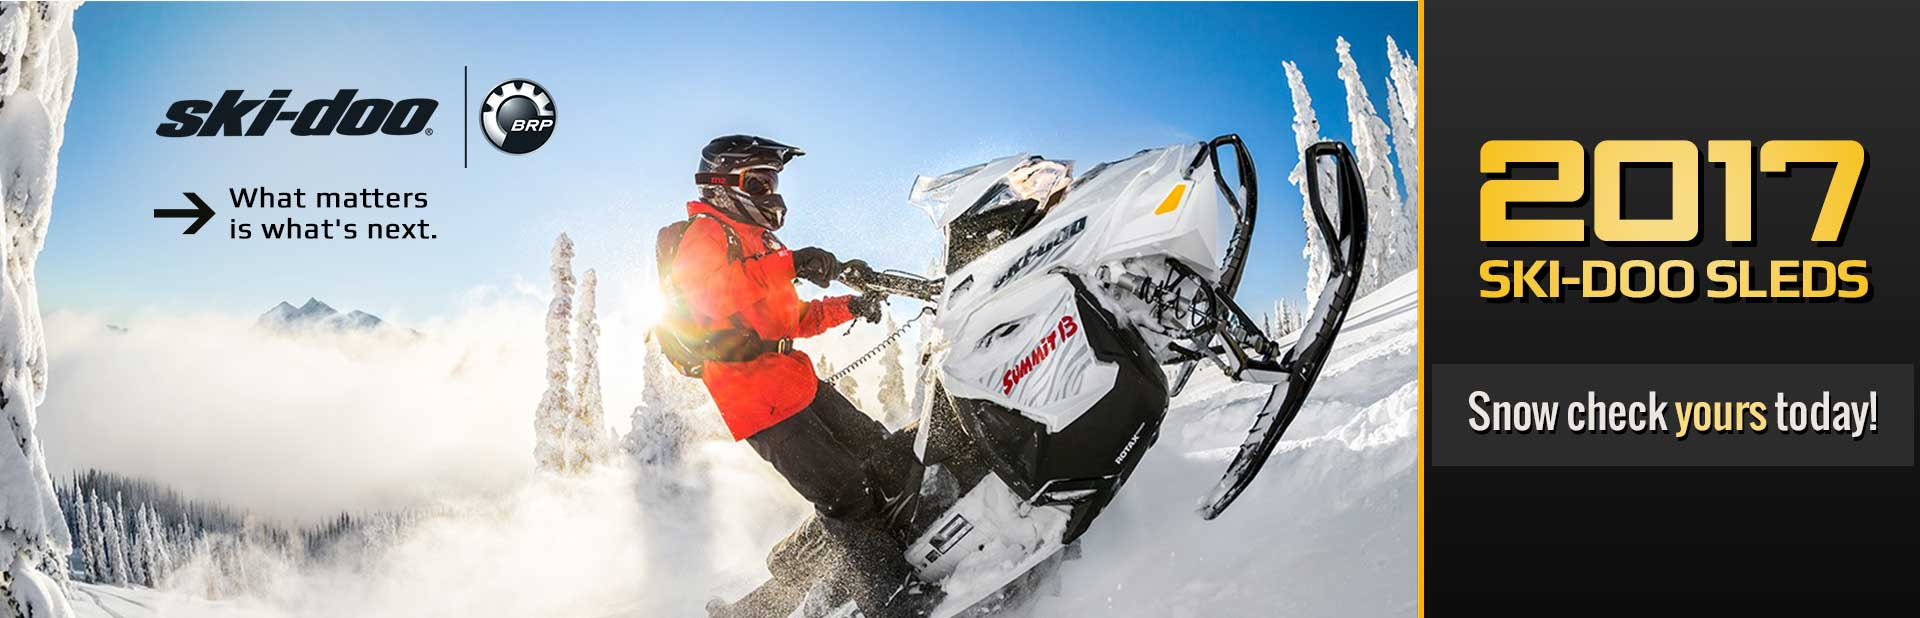 2017 Ski-Doo Sleds: Snow check yours today!